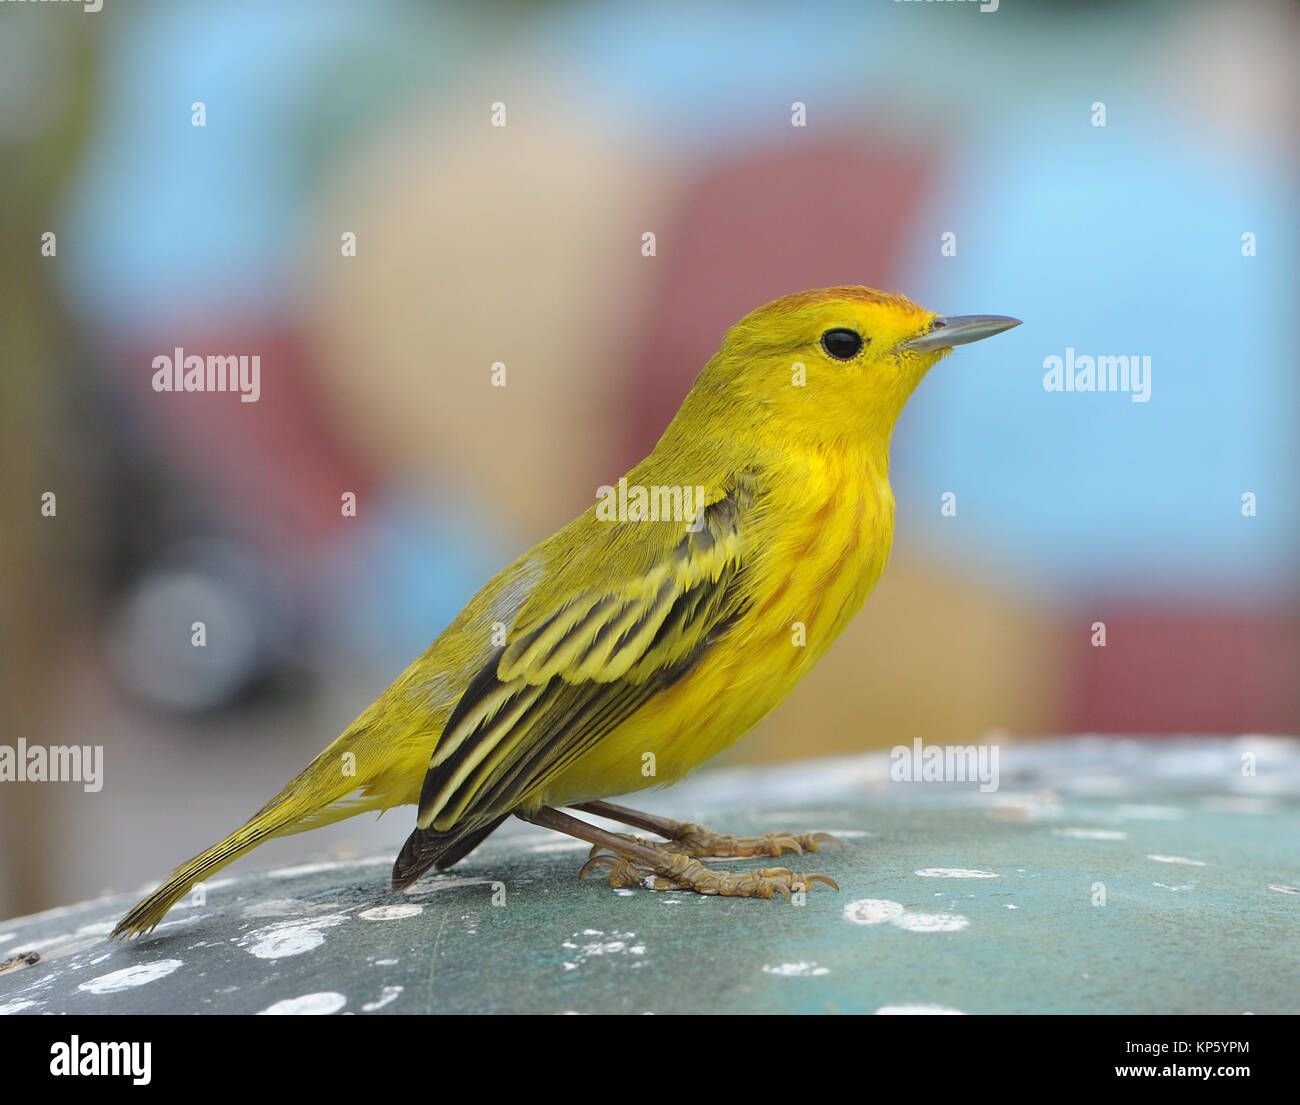 The yellow warbler (Setophaga petechia, Dendroica petechia) is s common site in dryer parts of Galapagos, even in - Stock Image